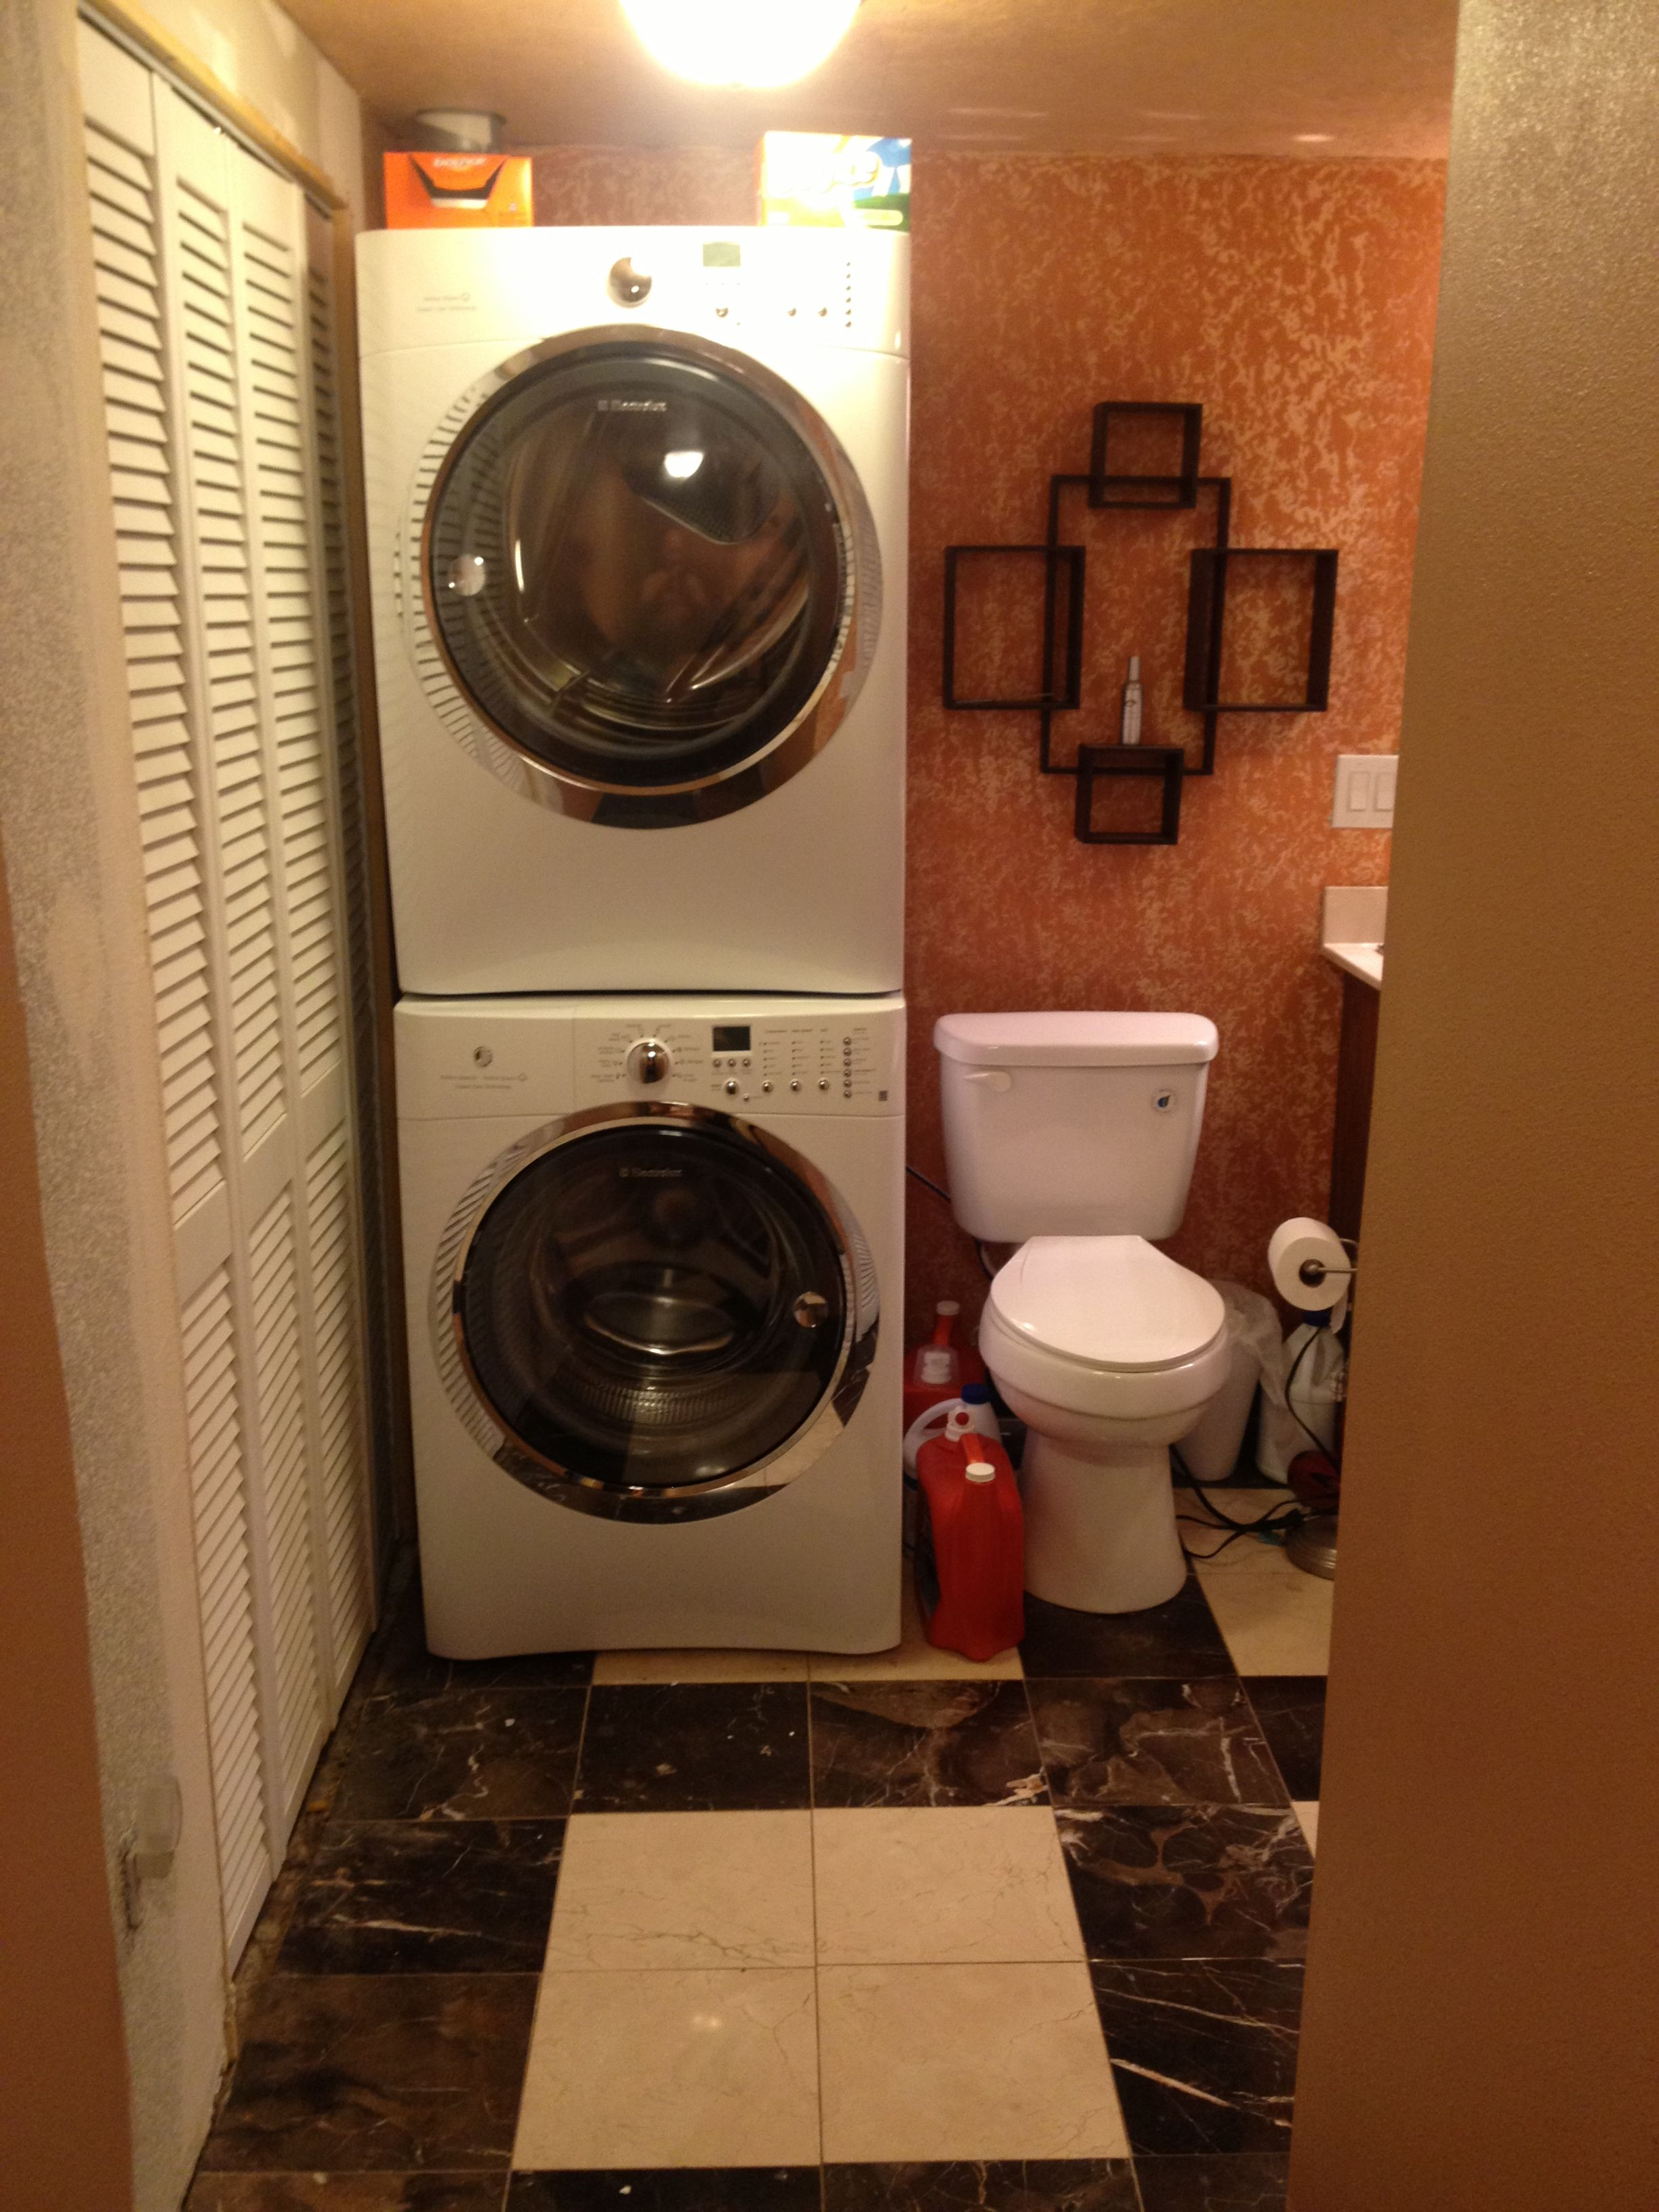 7 X 14 Bathroom Marble Floors Stack Washer And Dryer